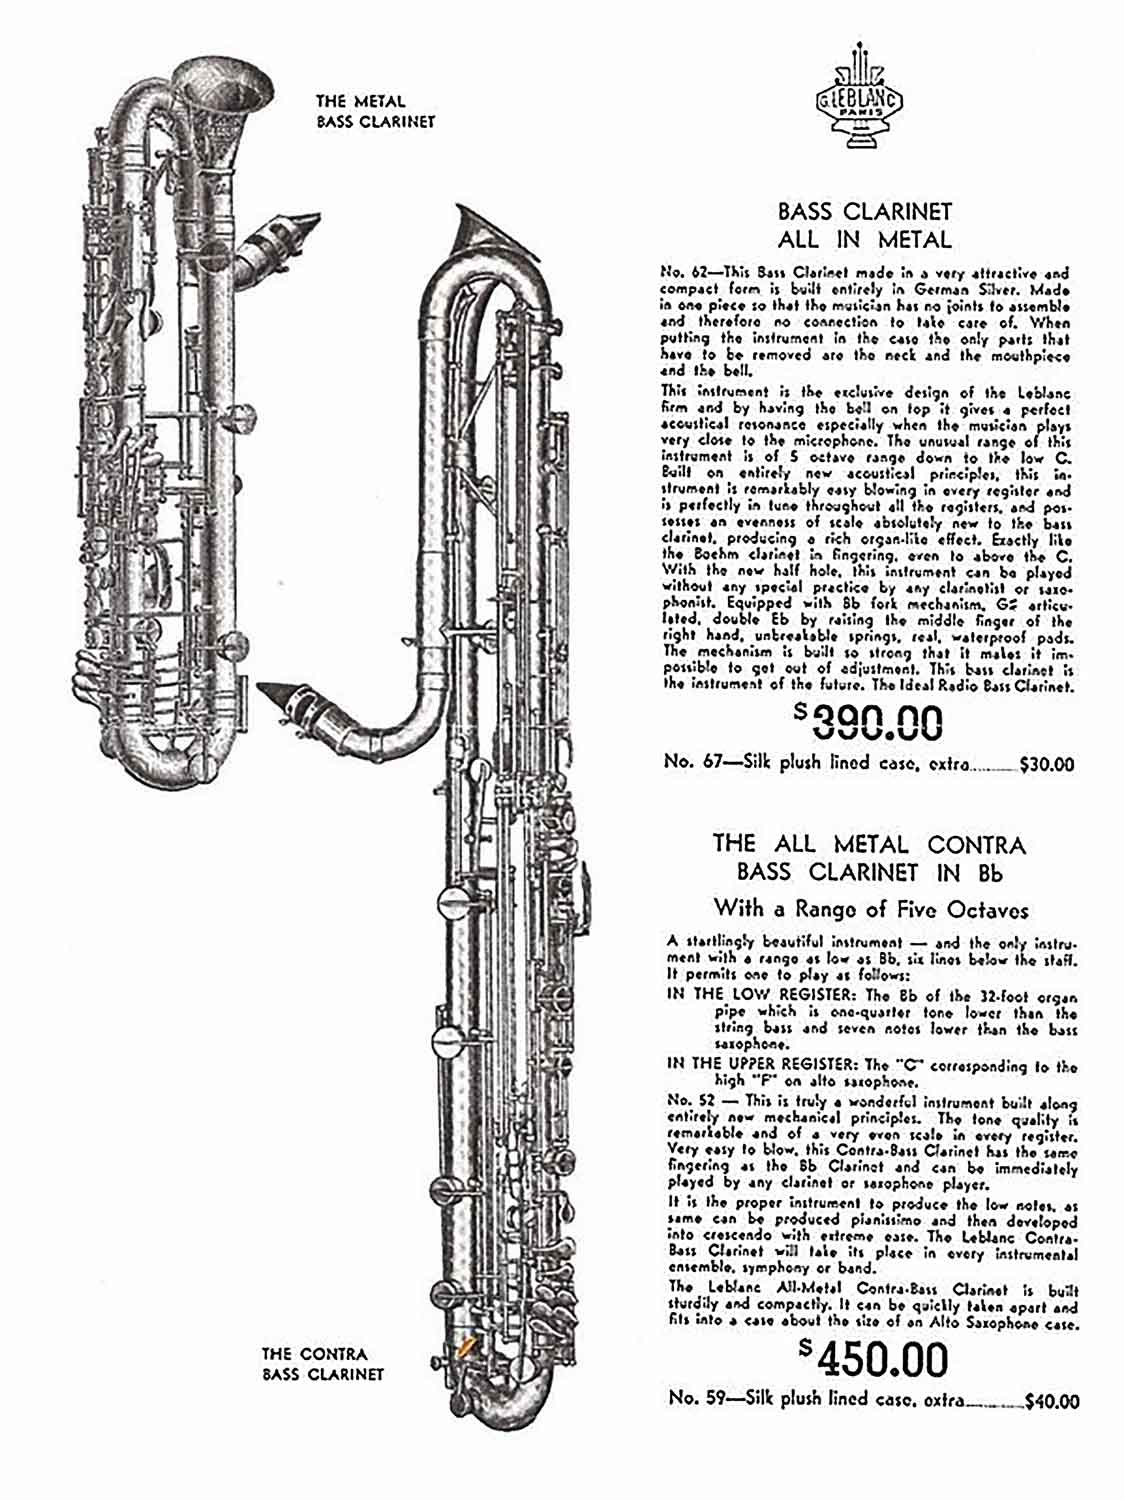 Valentin cases : A 1955 advertising with a bass paperclip clarinet at 390$ and a contrebass at 450$